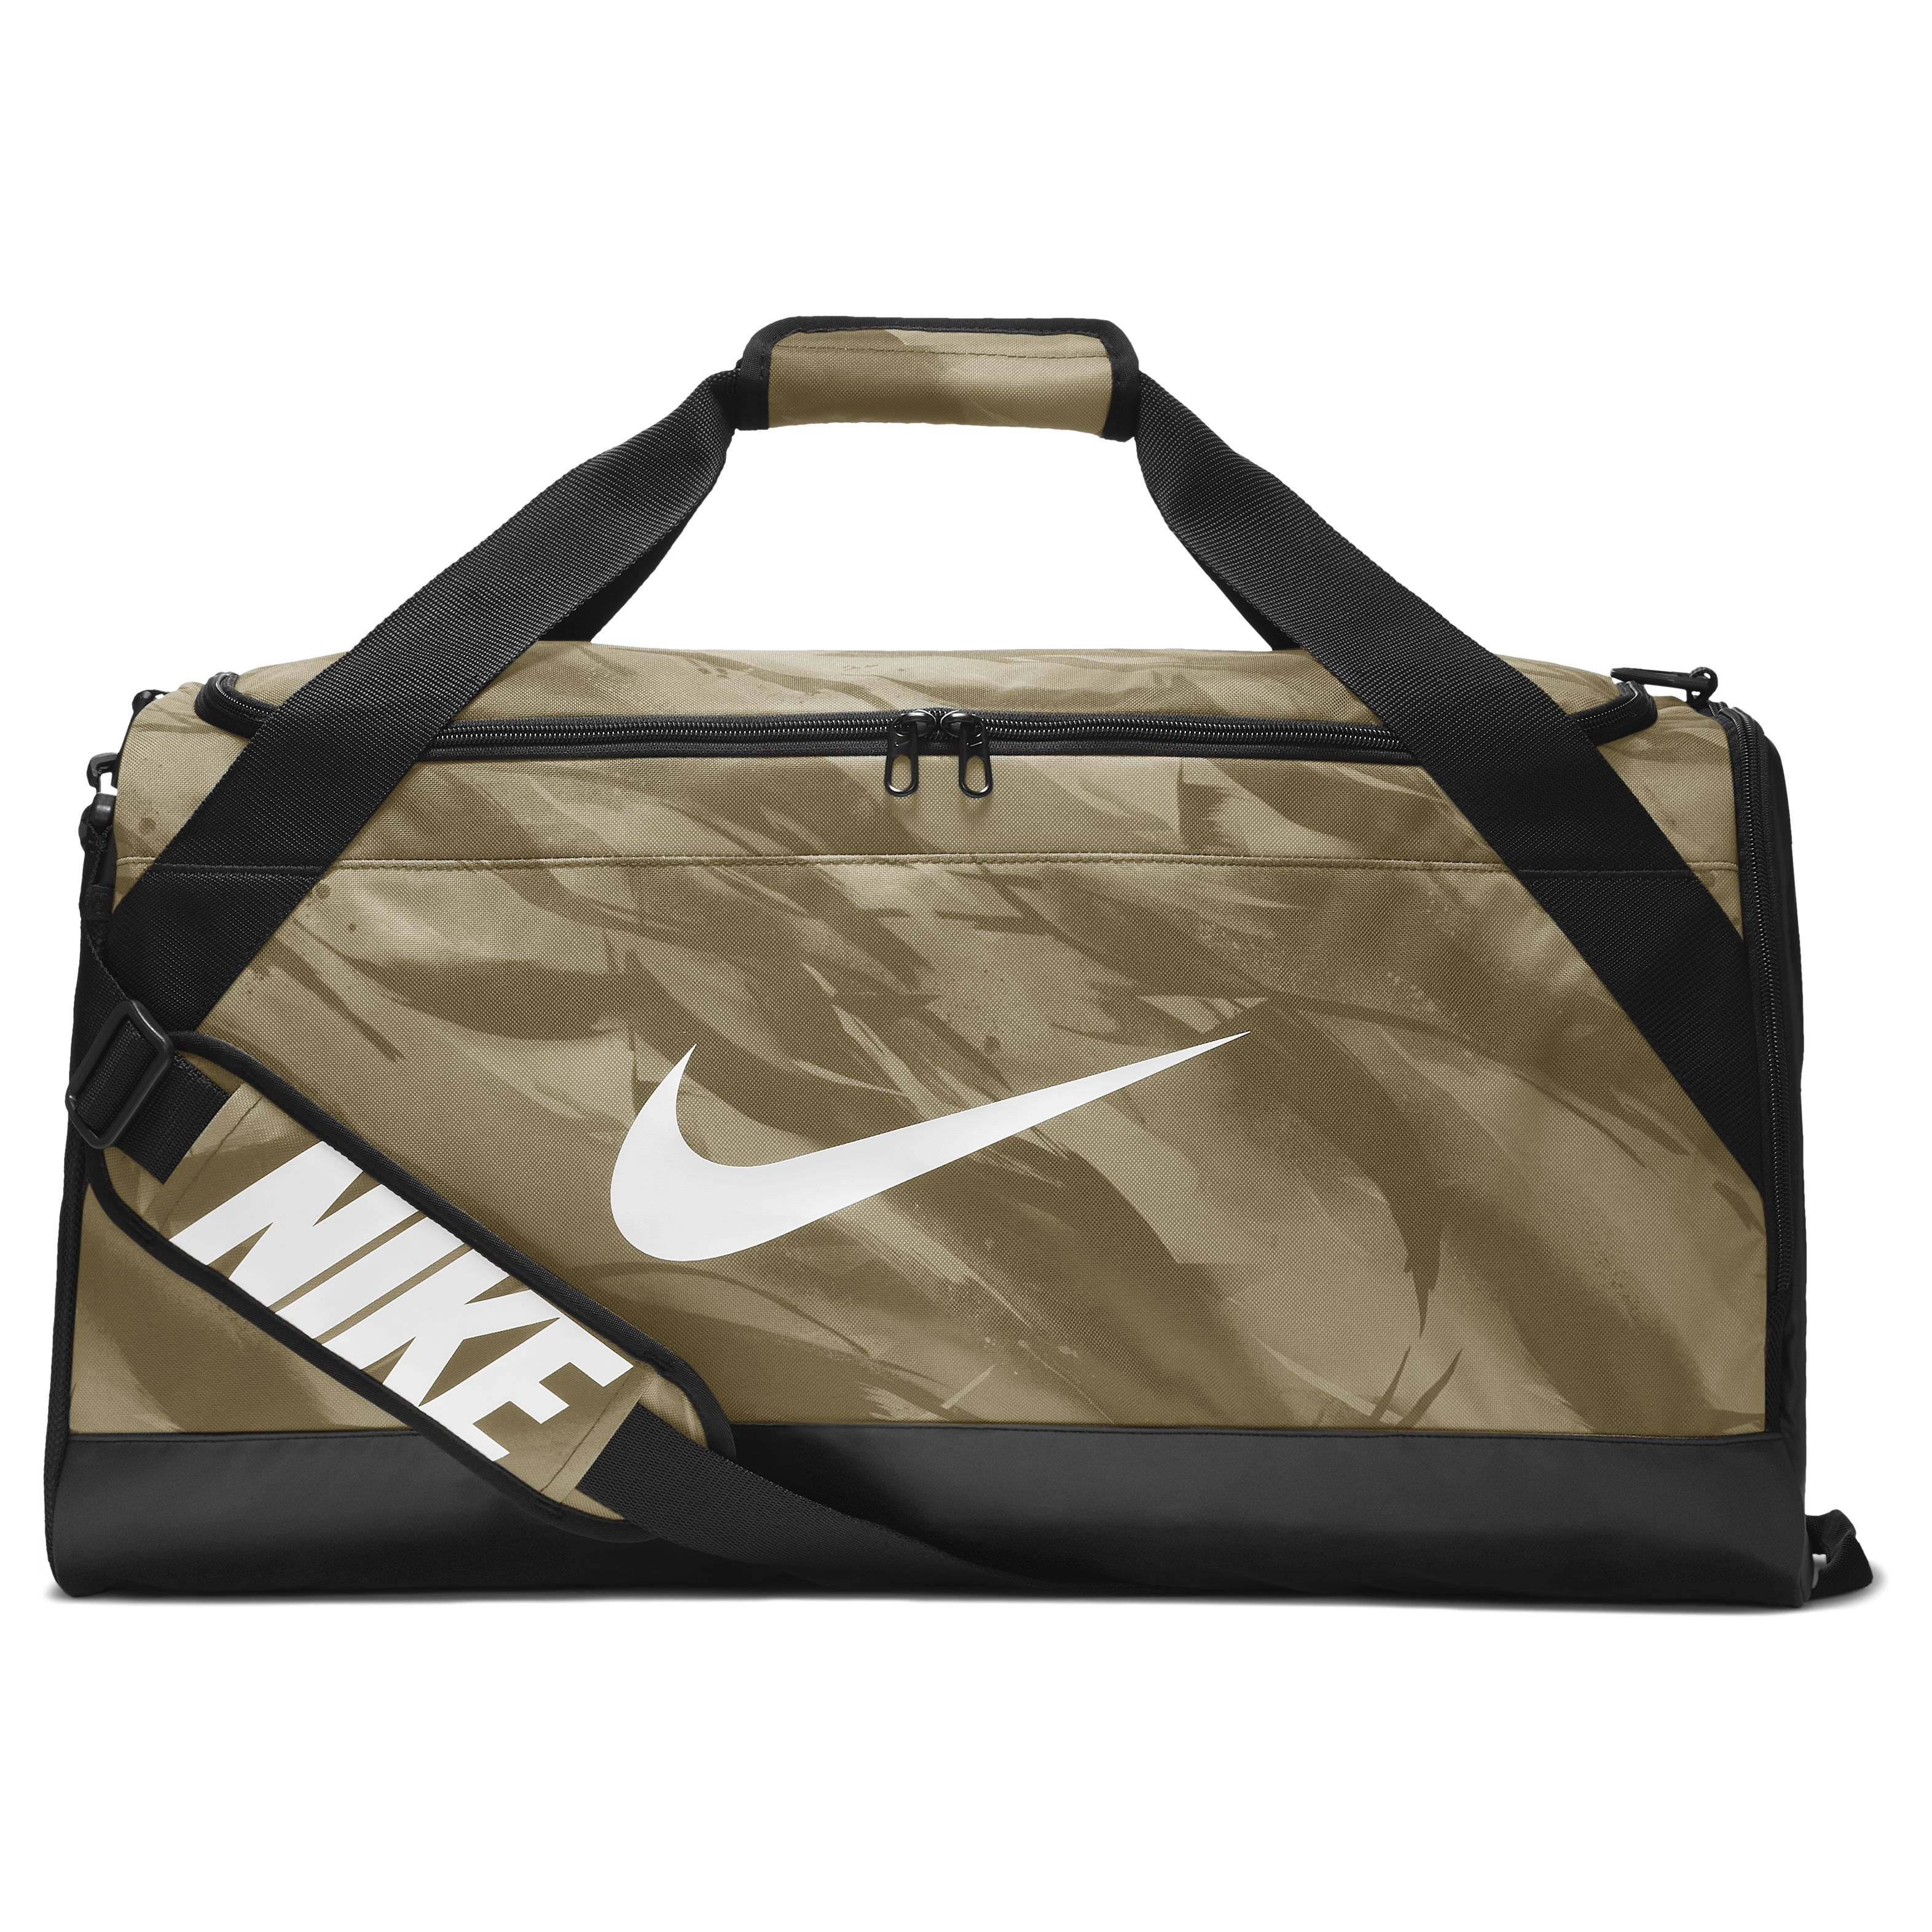 a4a5c9e91f8c6 torba Nike Brasilia (Medium) Training Duffel Bag BA5481 209 ...